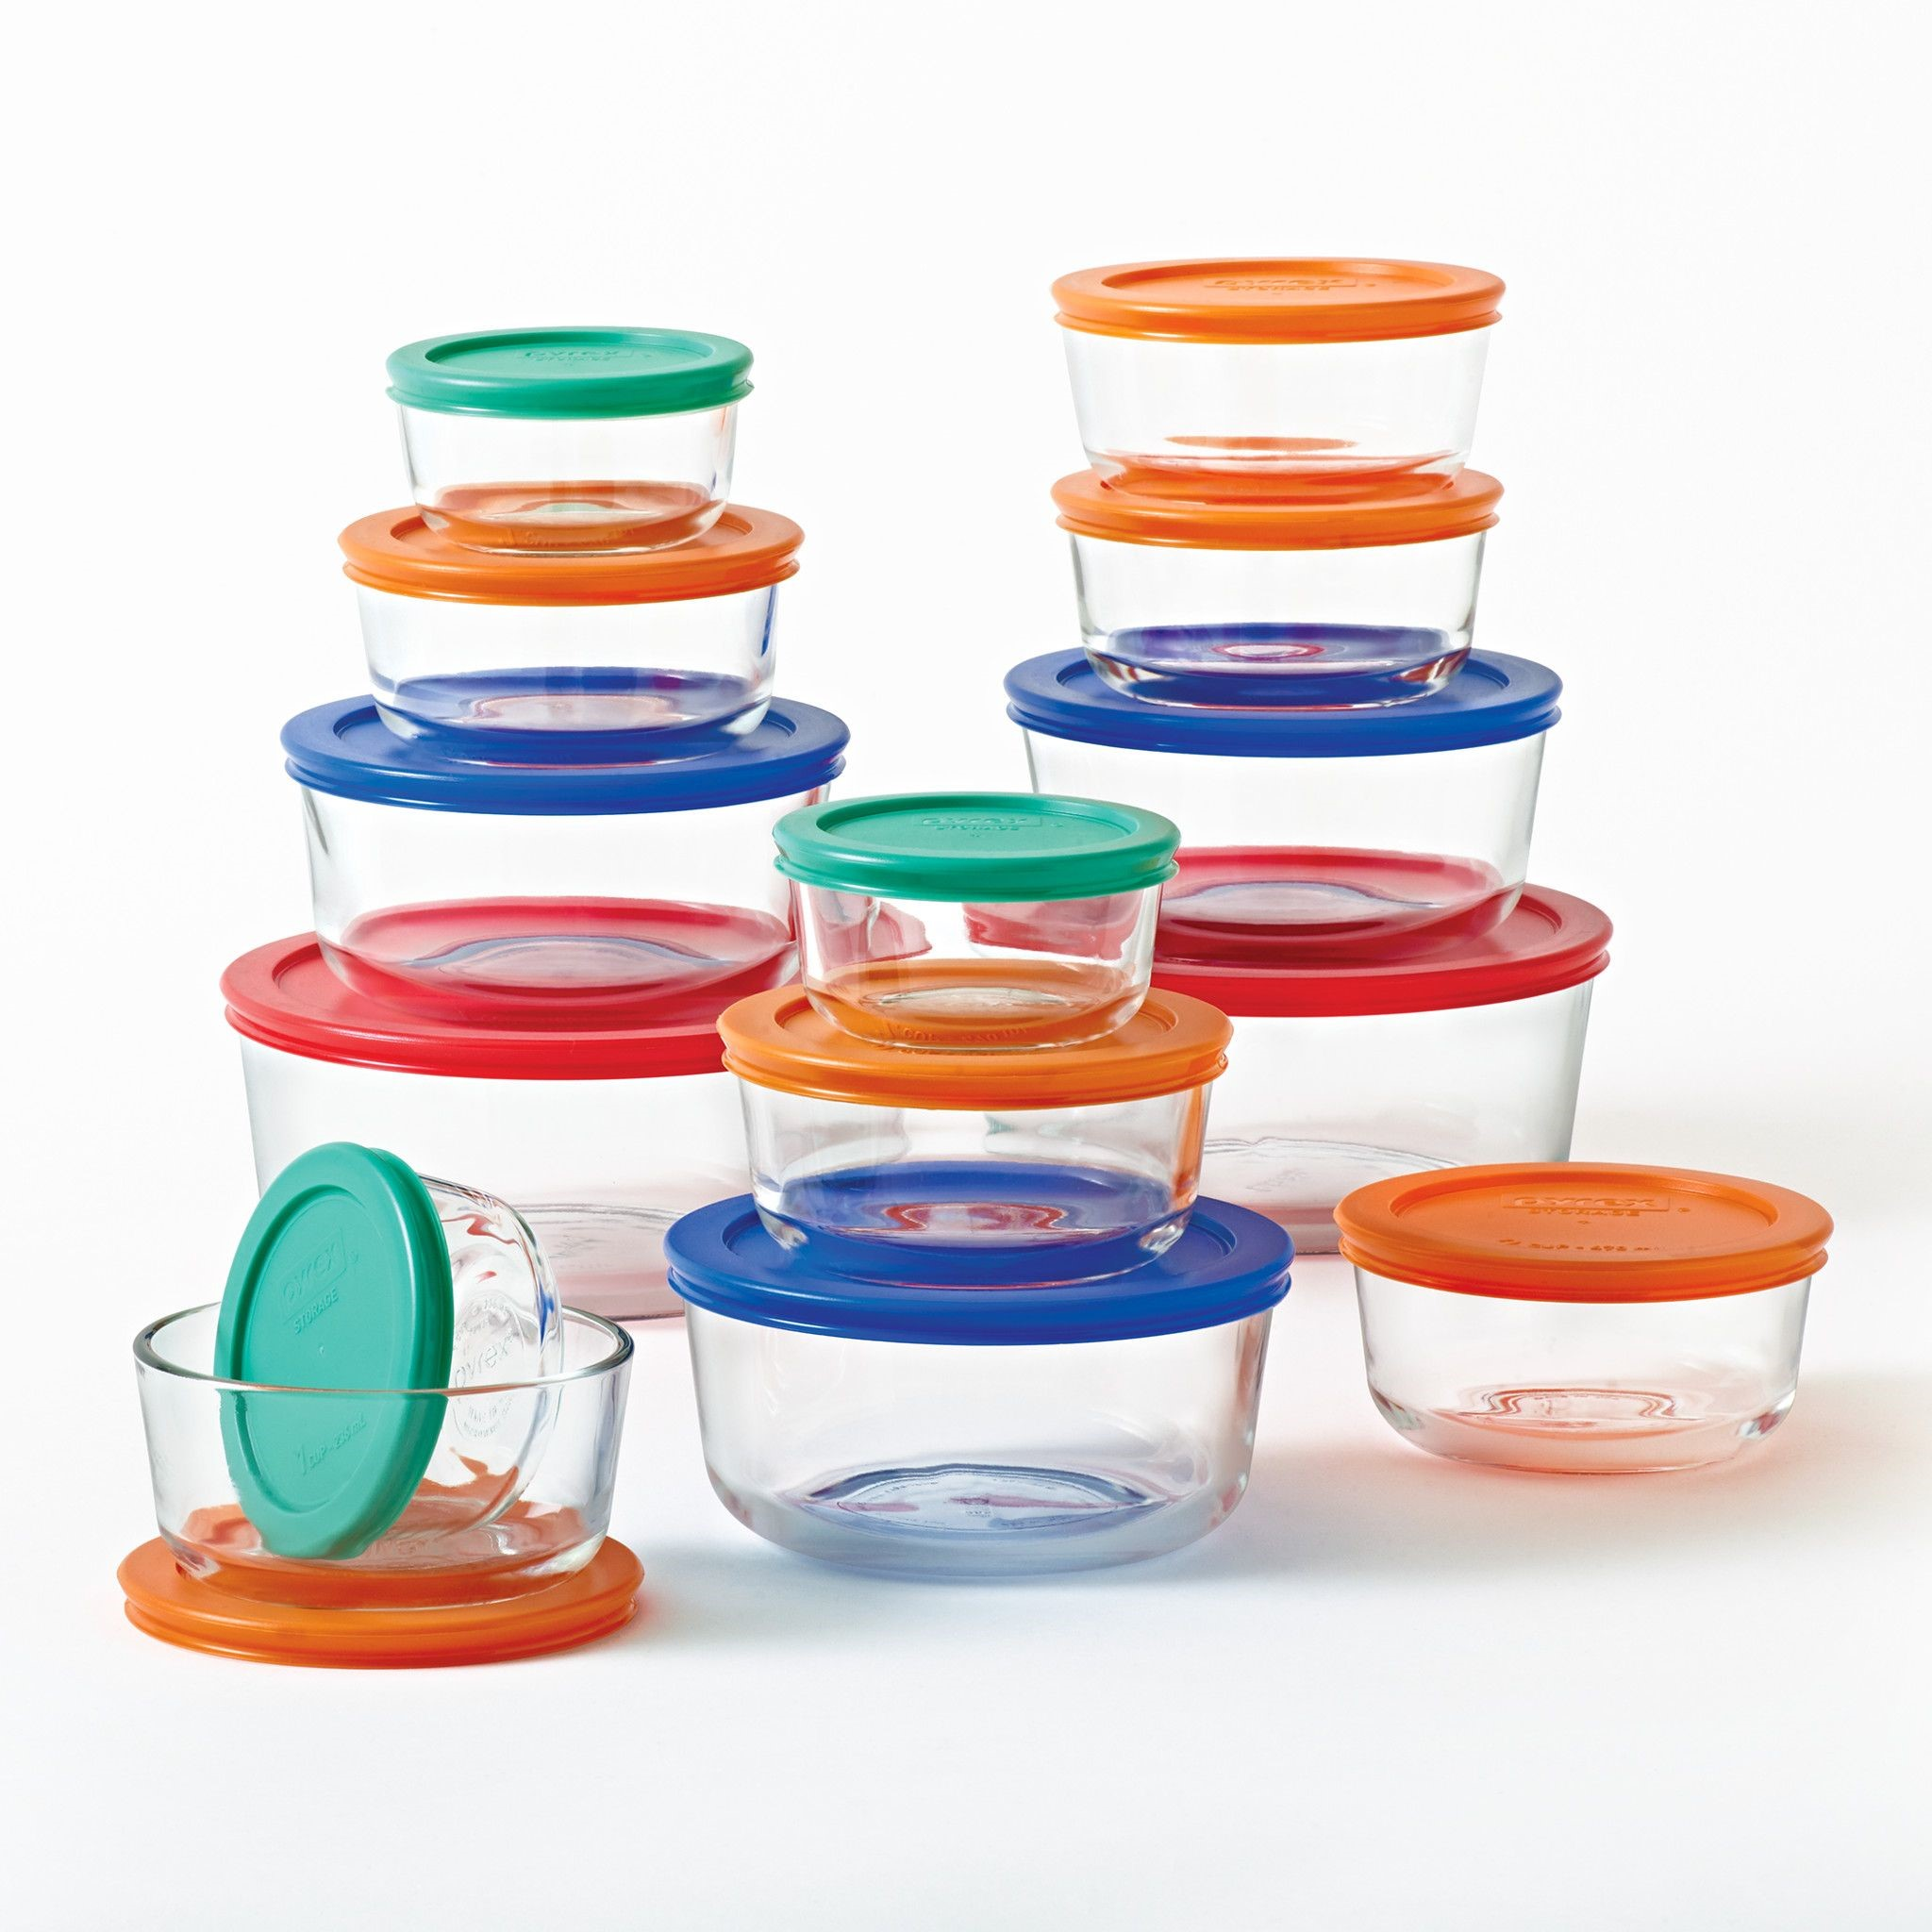 Pyrex simply store Glass storage set, 28 Piece